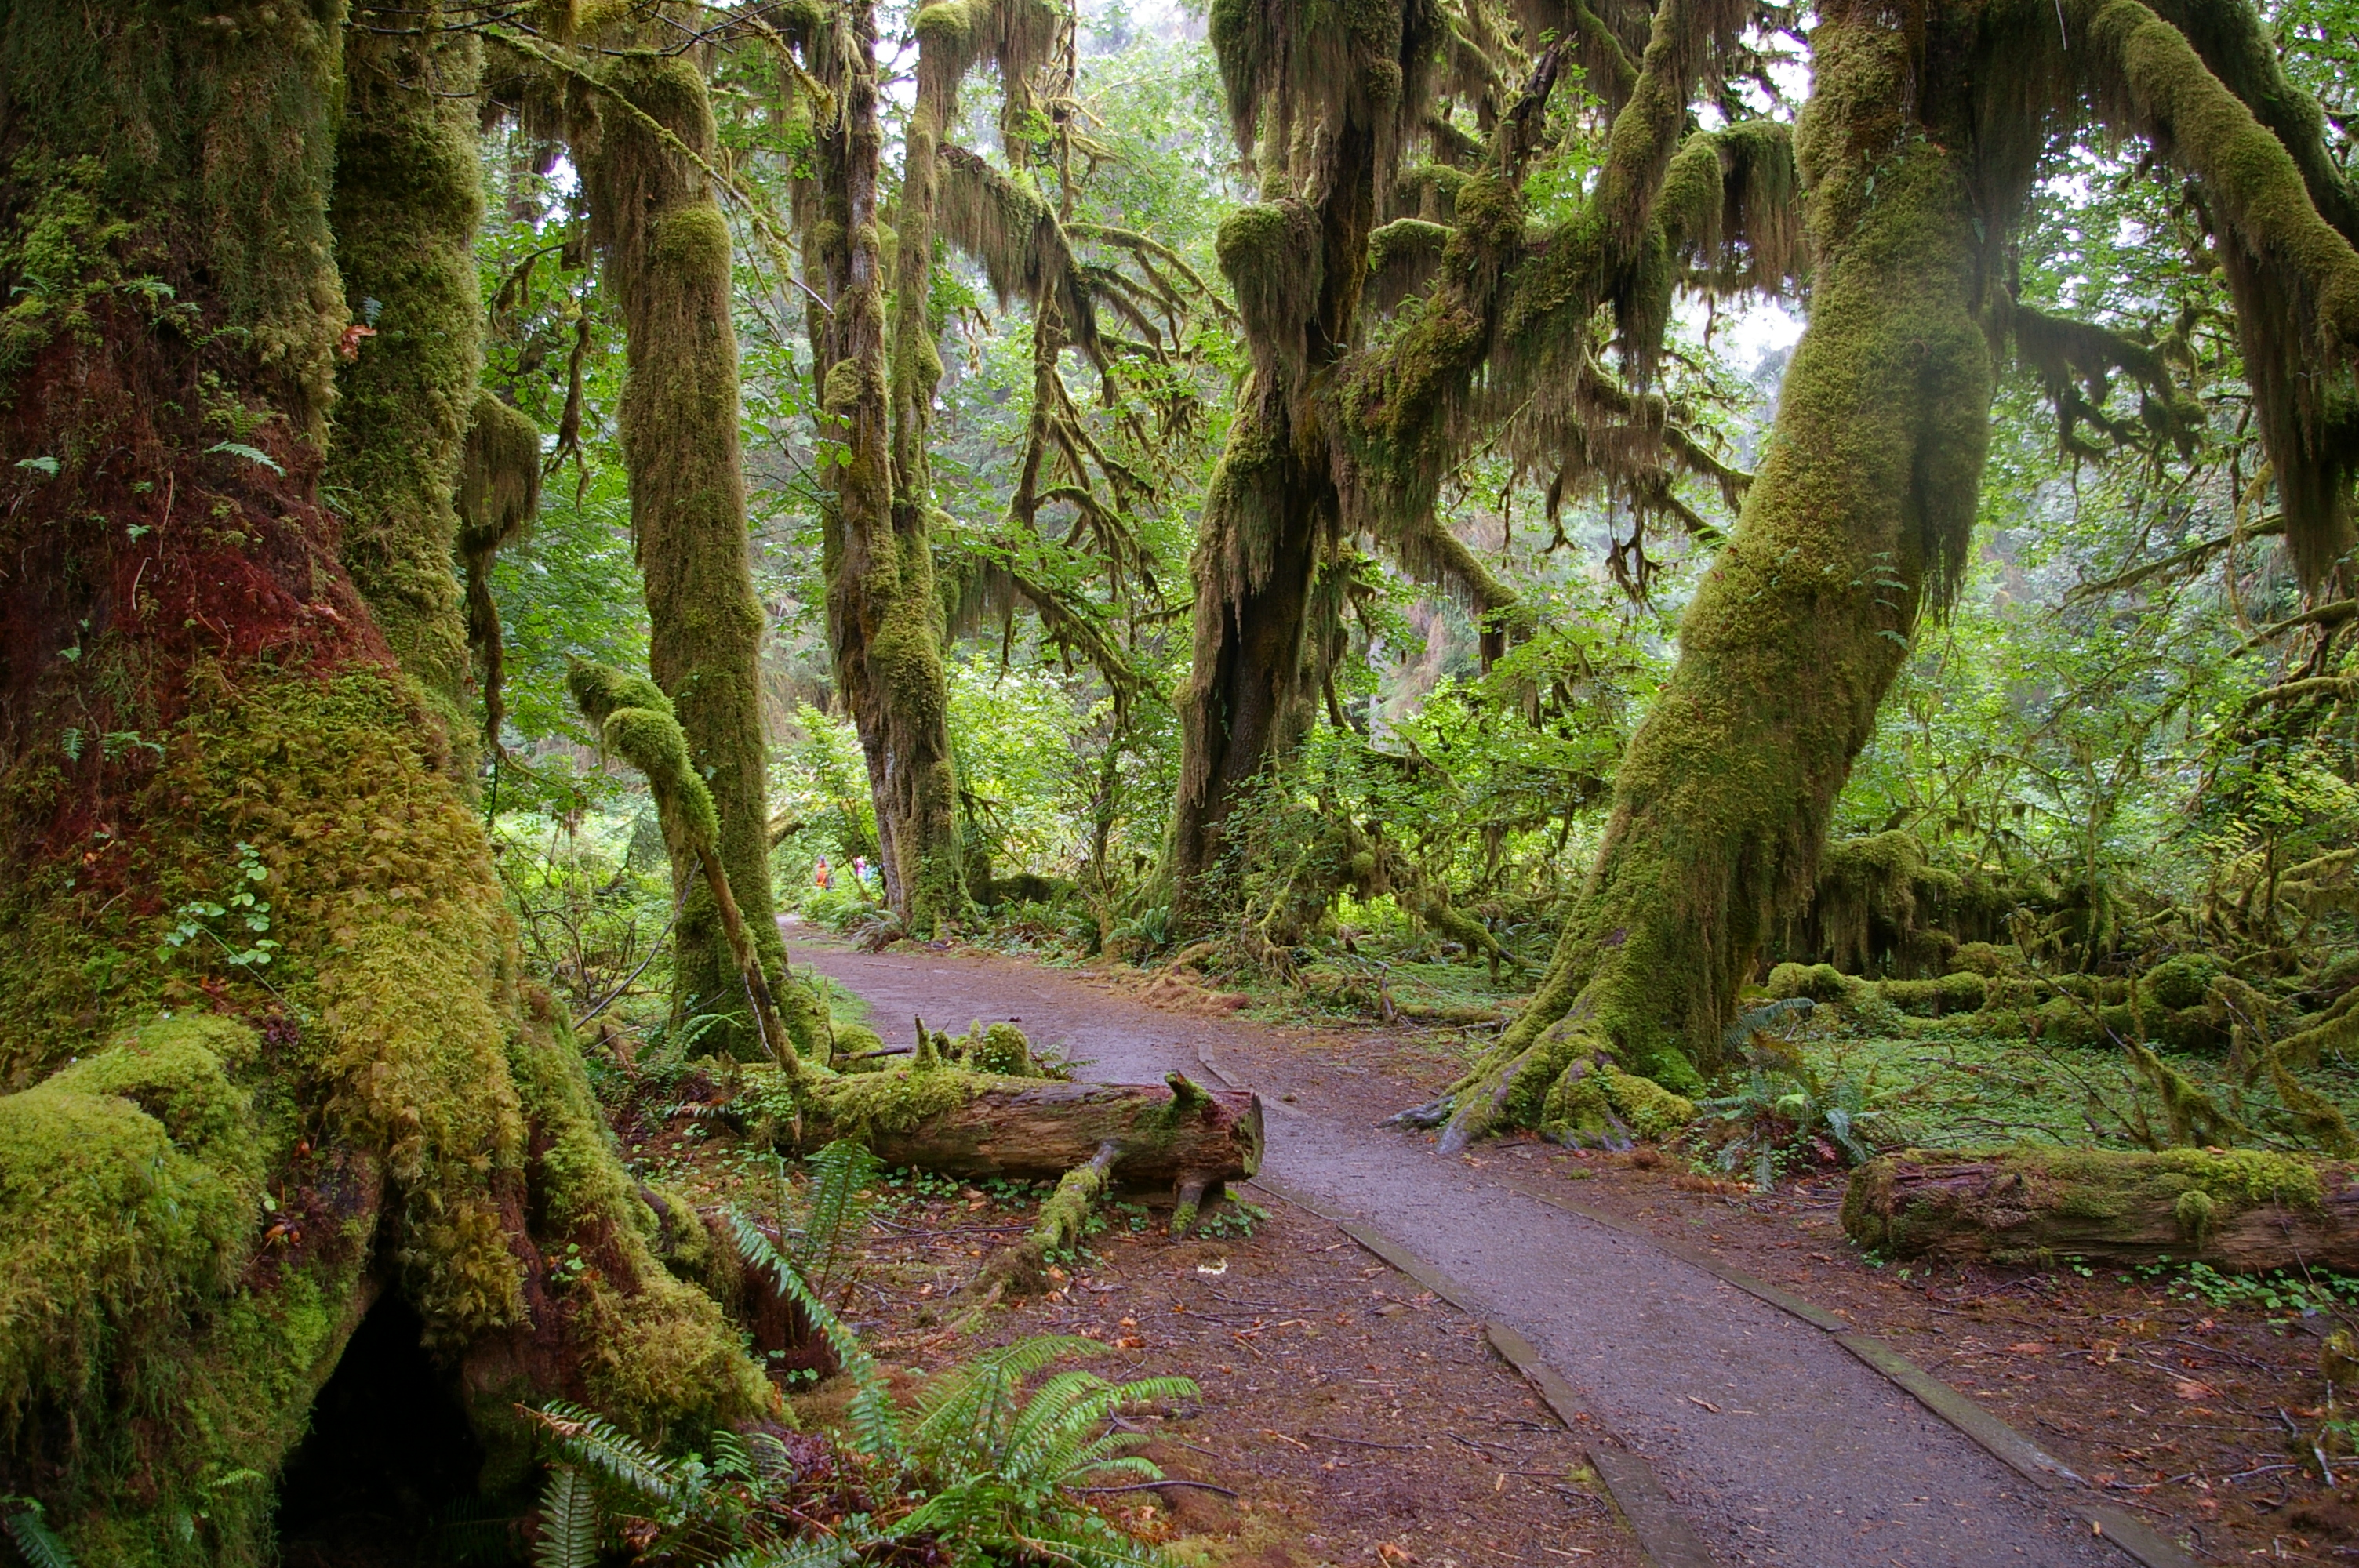 Forks_WA_Hoh_National_Forest_Trail-1